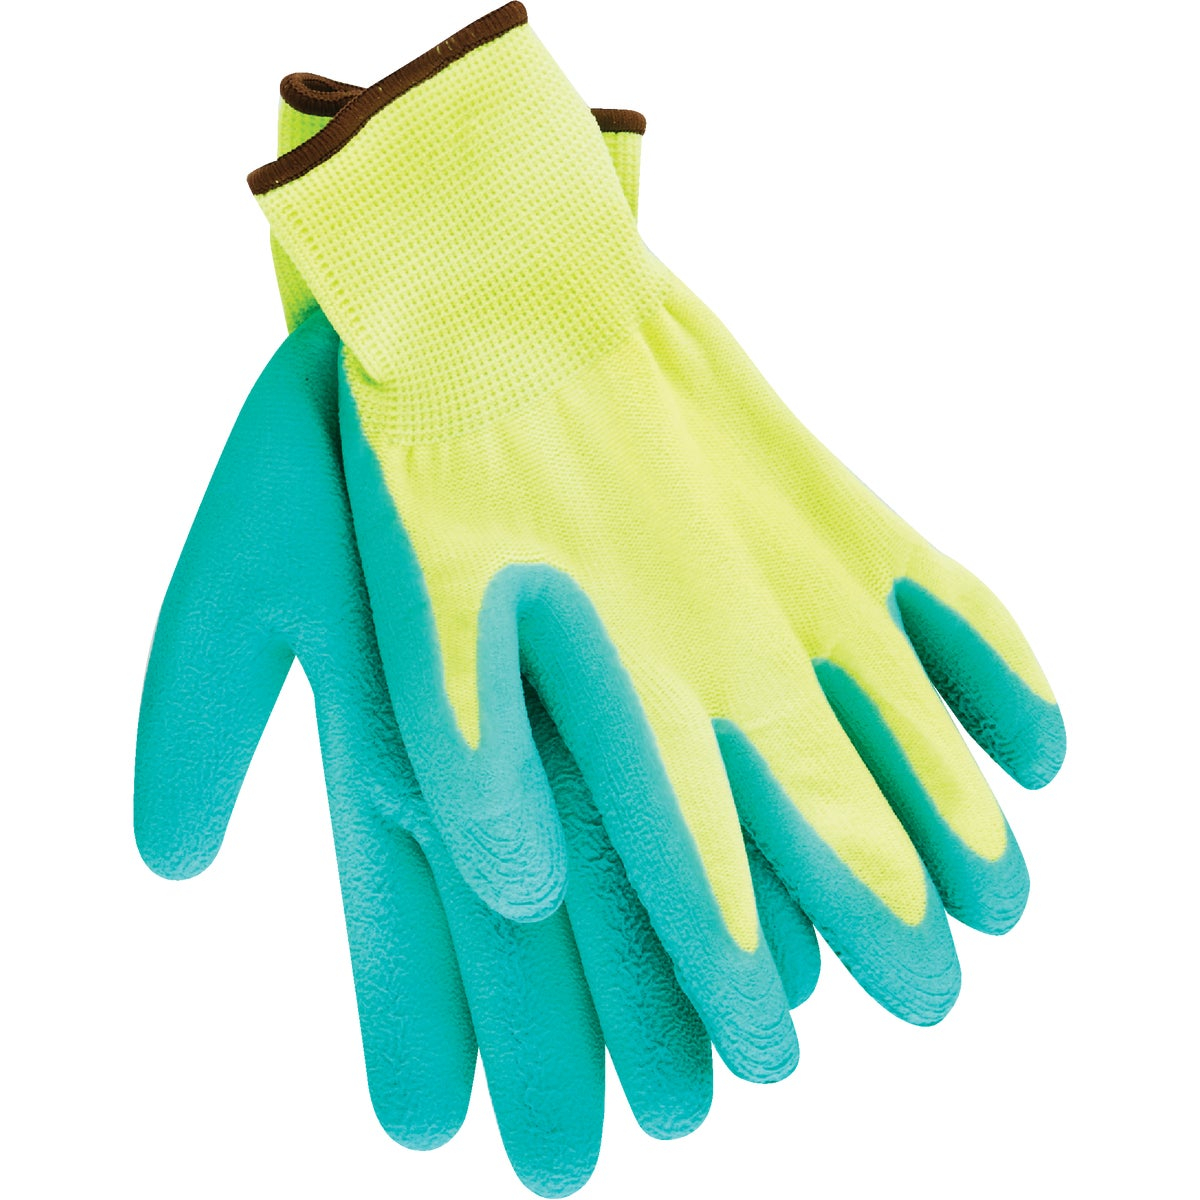 GREEN MEDIUM GRIP GLOVE - 703494 by Do it Best